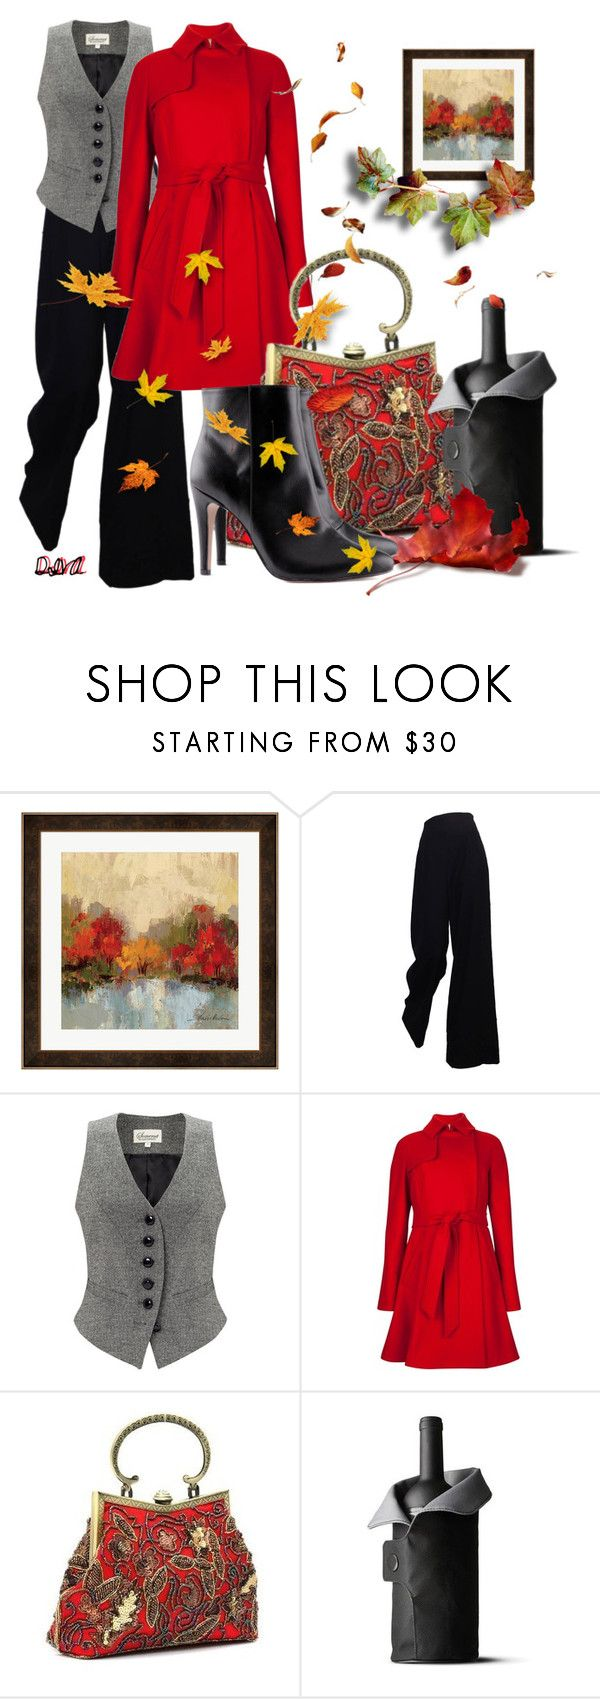 """Fall"" by nelly-nedeva ❤ liked on Polyvore featuring The Row, Somerset by Alice Temperley, Ted Baker, Menu, H&M and 504"